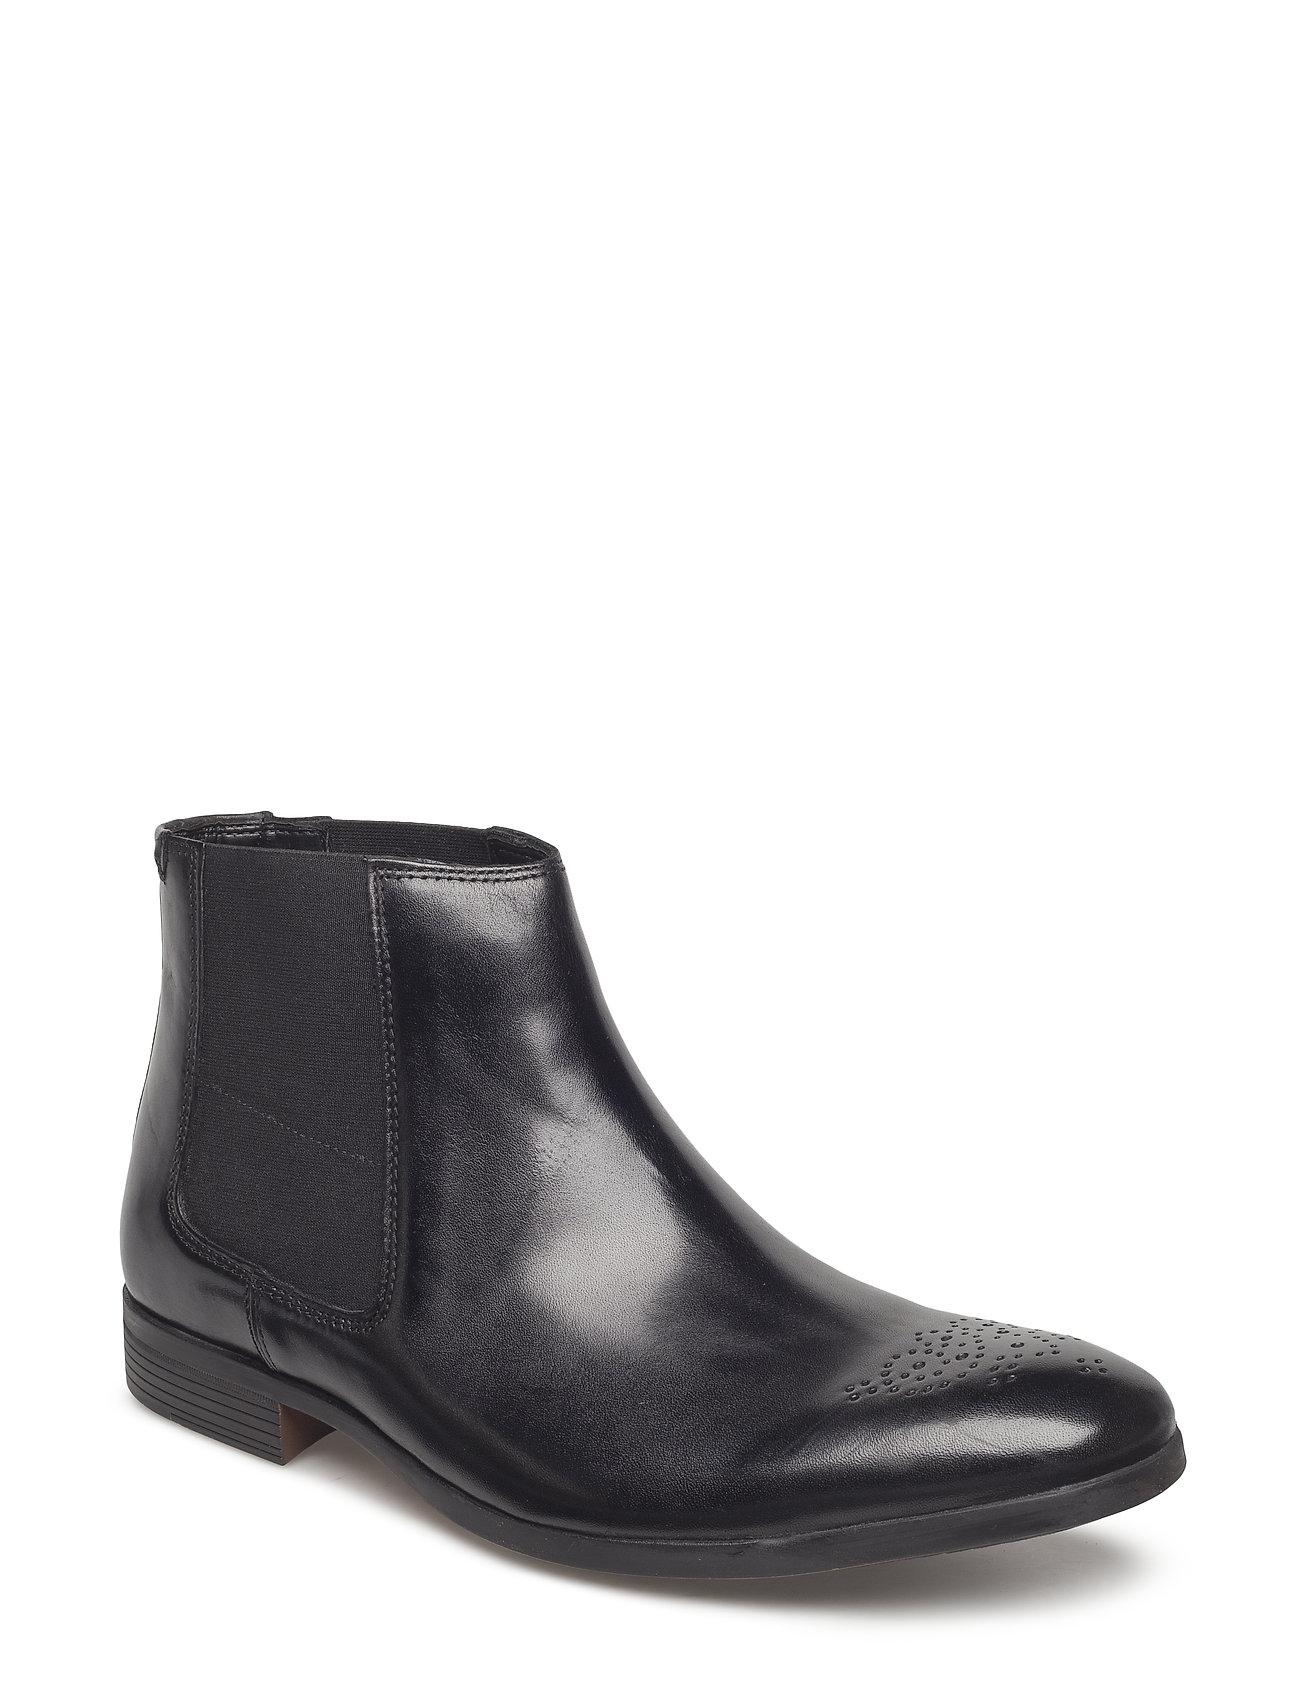 Clarks GilmoreChelsea - BLACK LEATHER